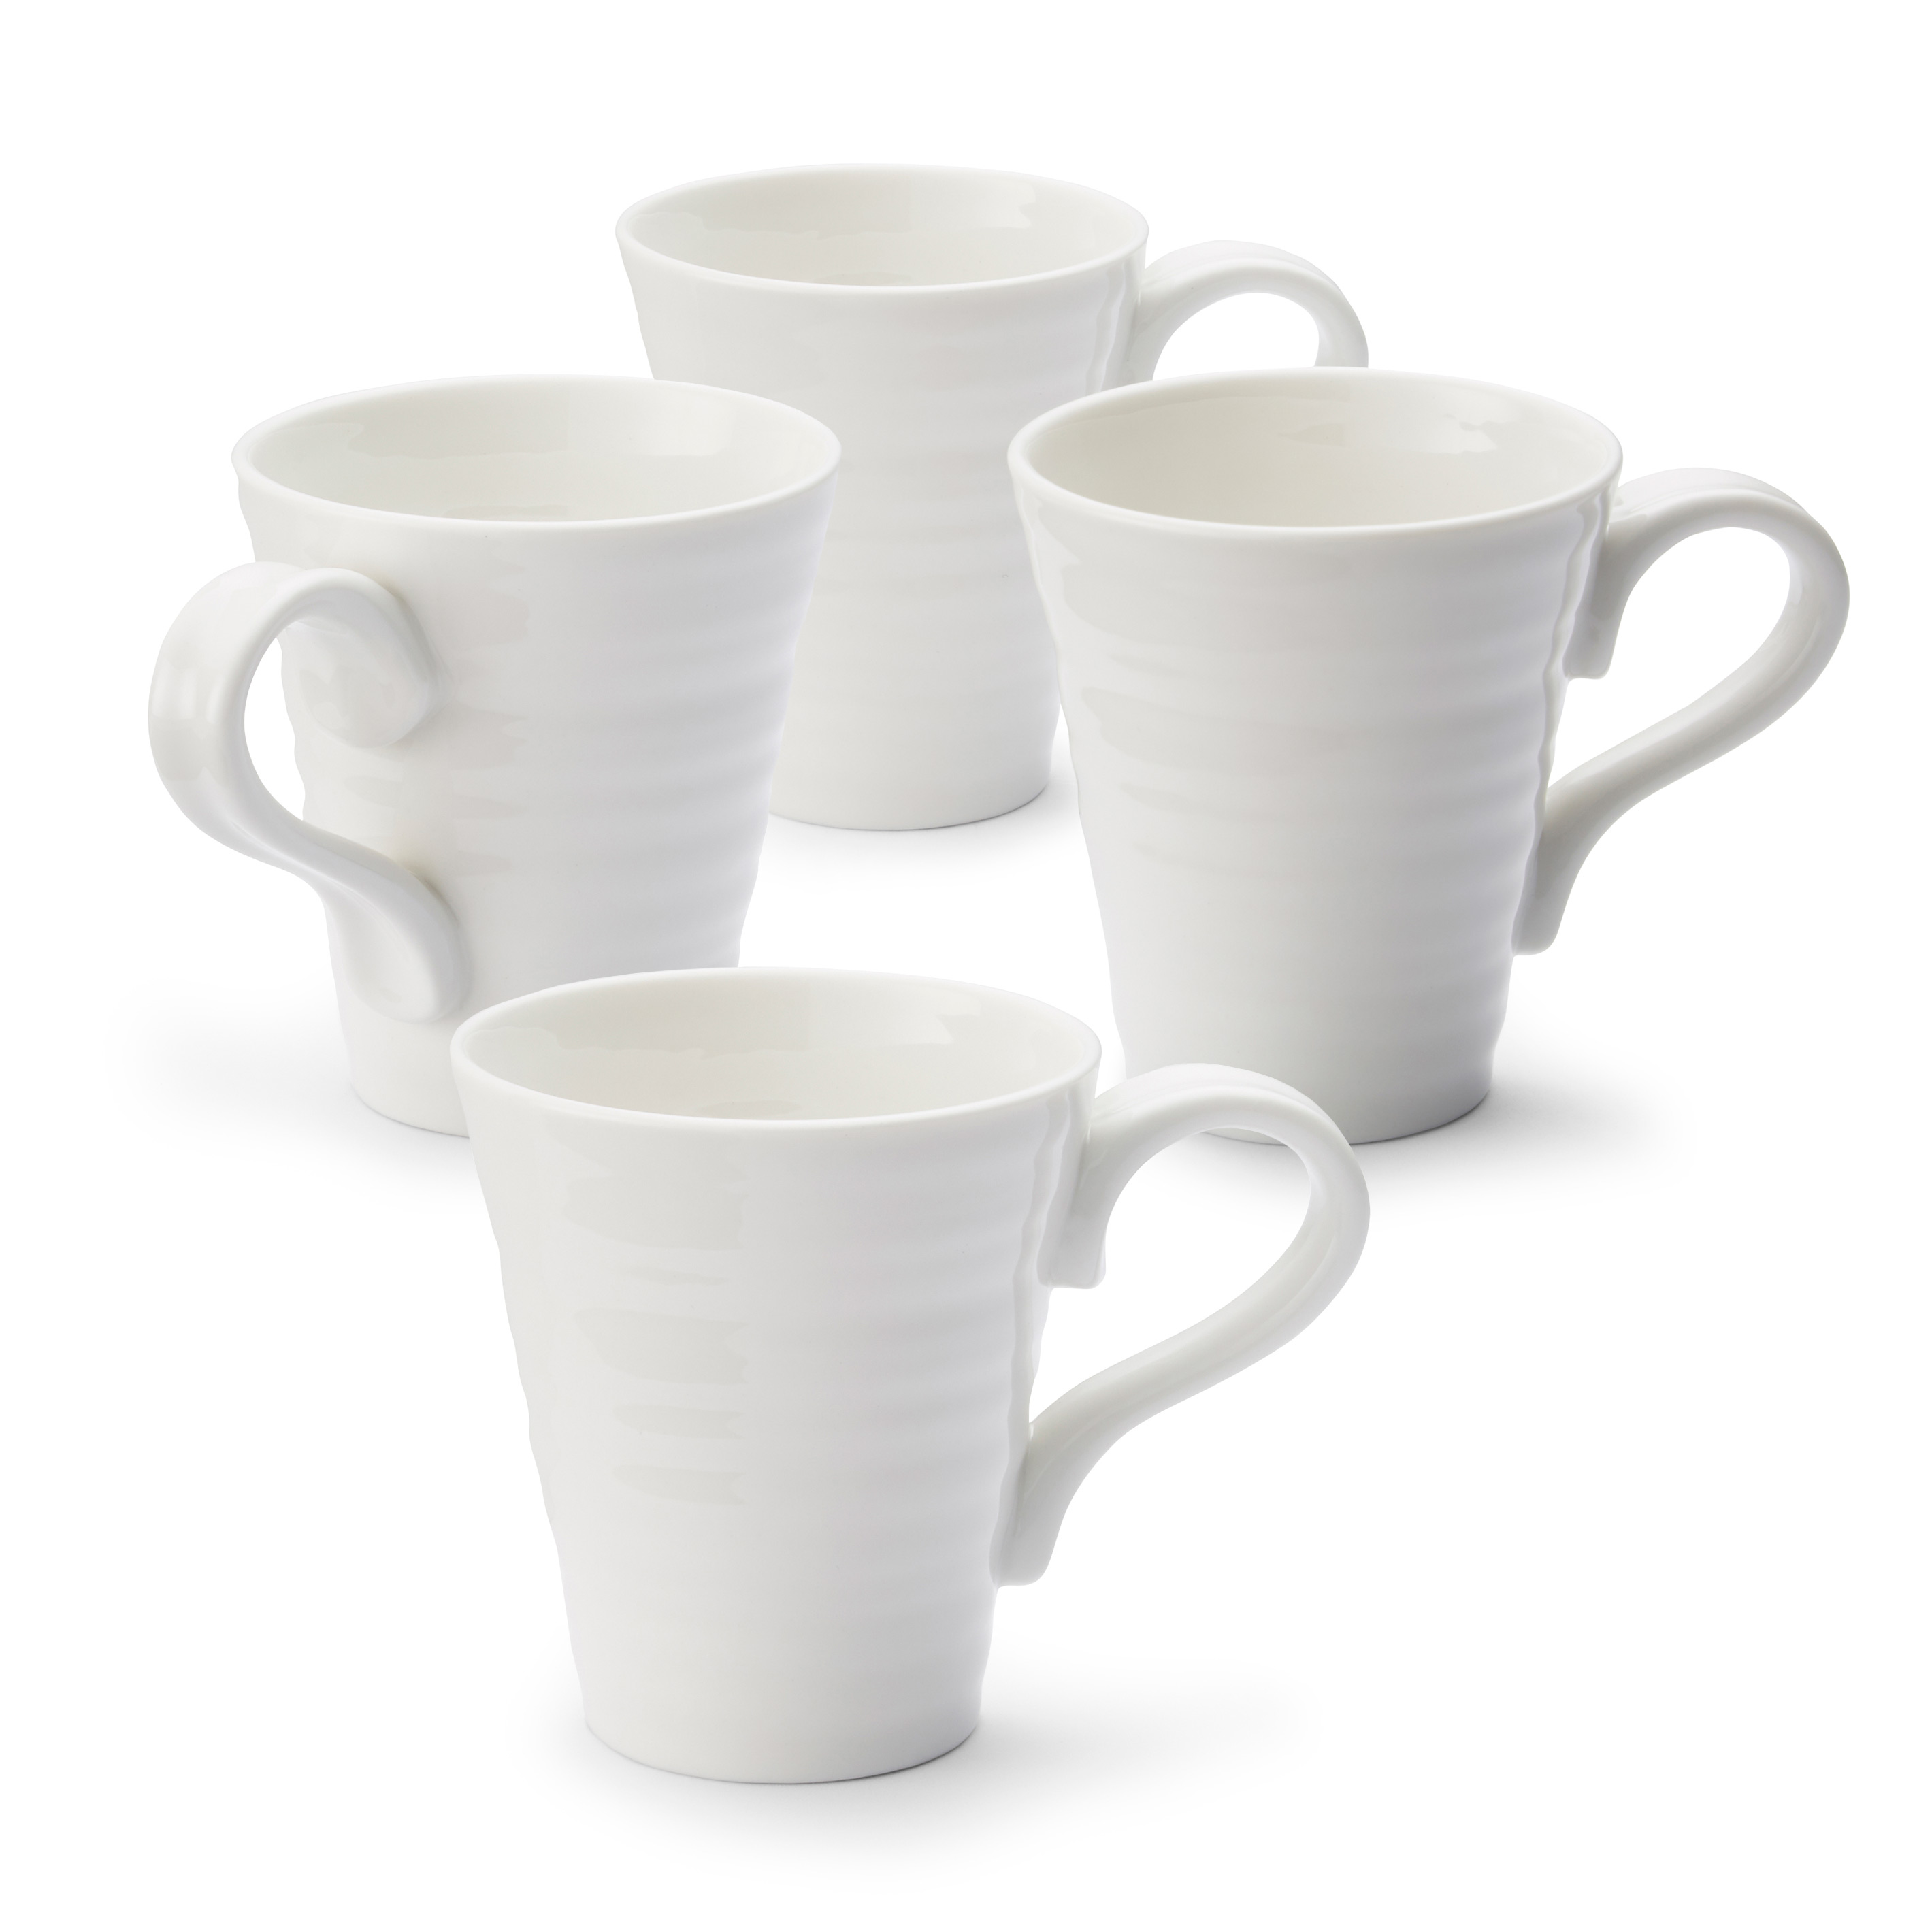 Portmeirion Sophie Conran White Set of 4 Mugs image number 0